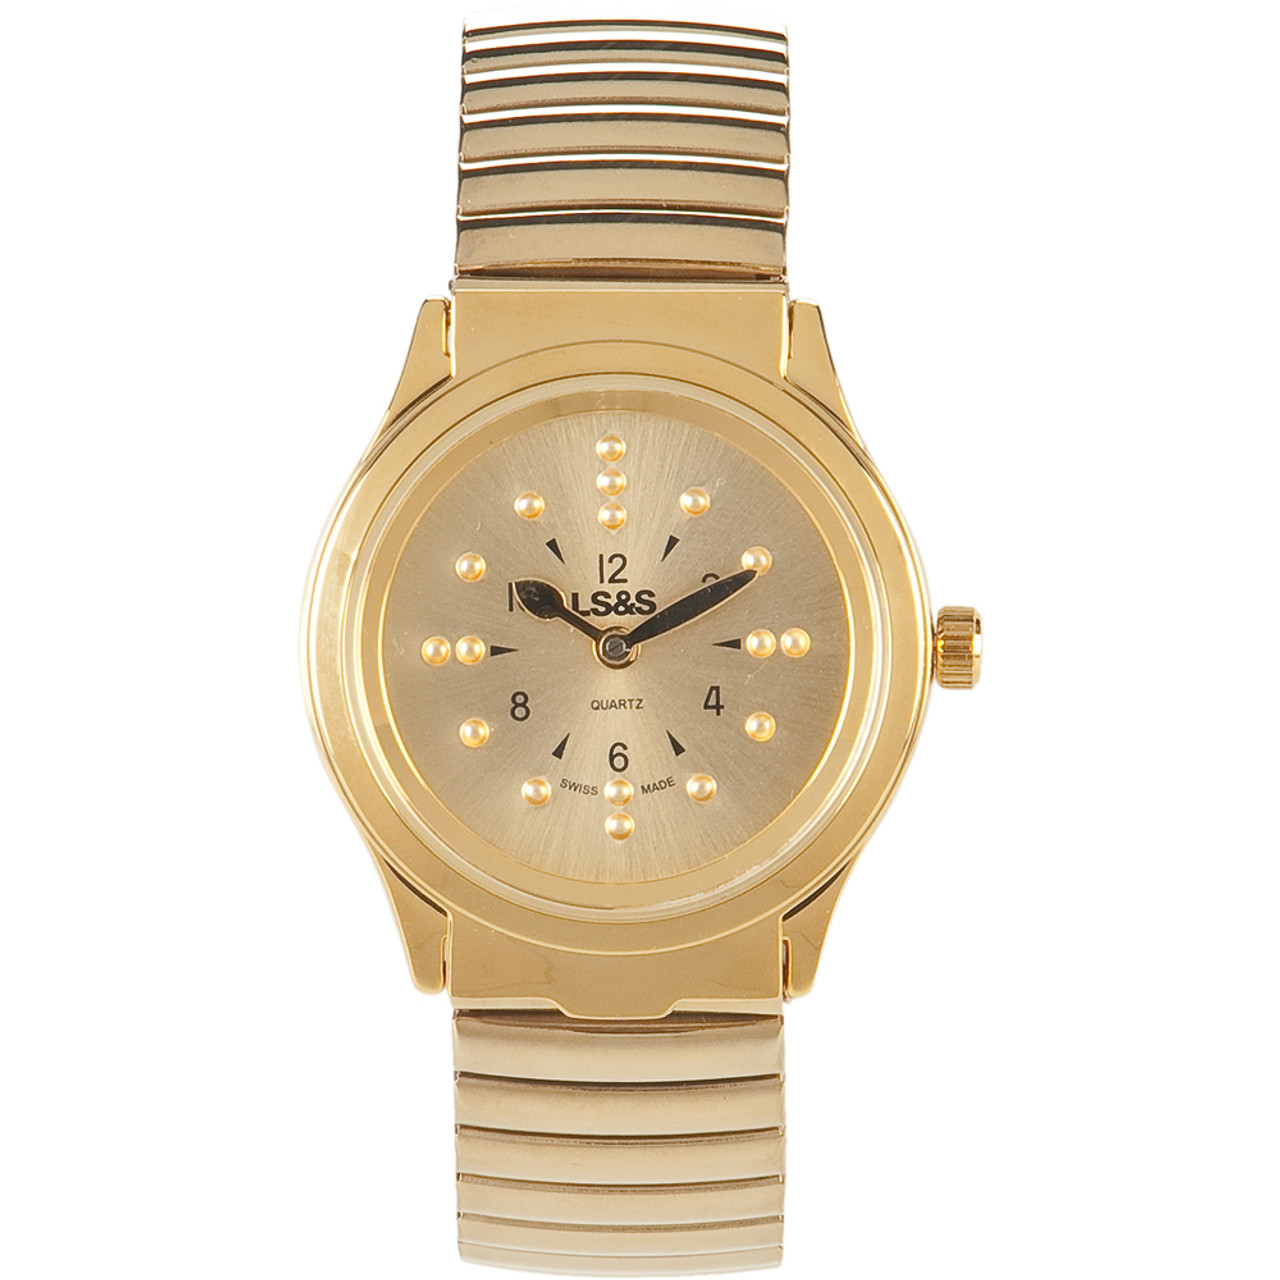 Braille Watch - Gold Face - Gold Expansion Band